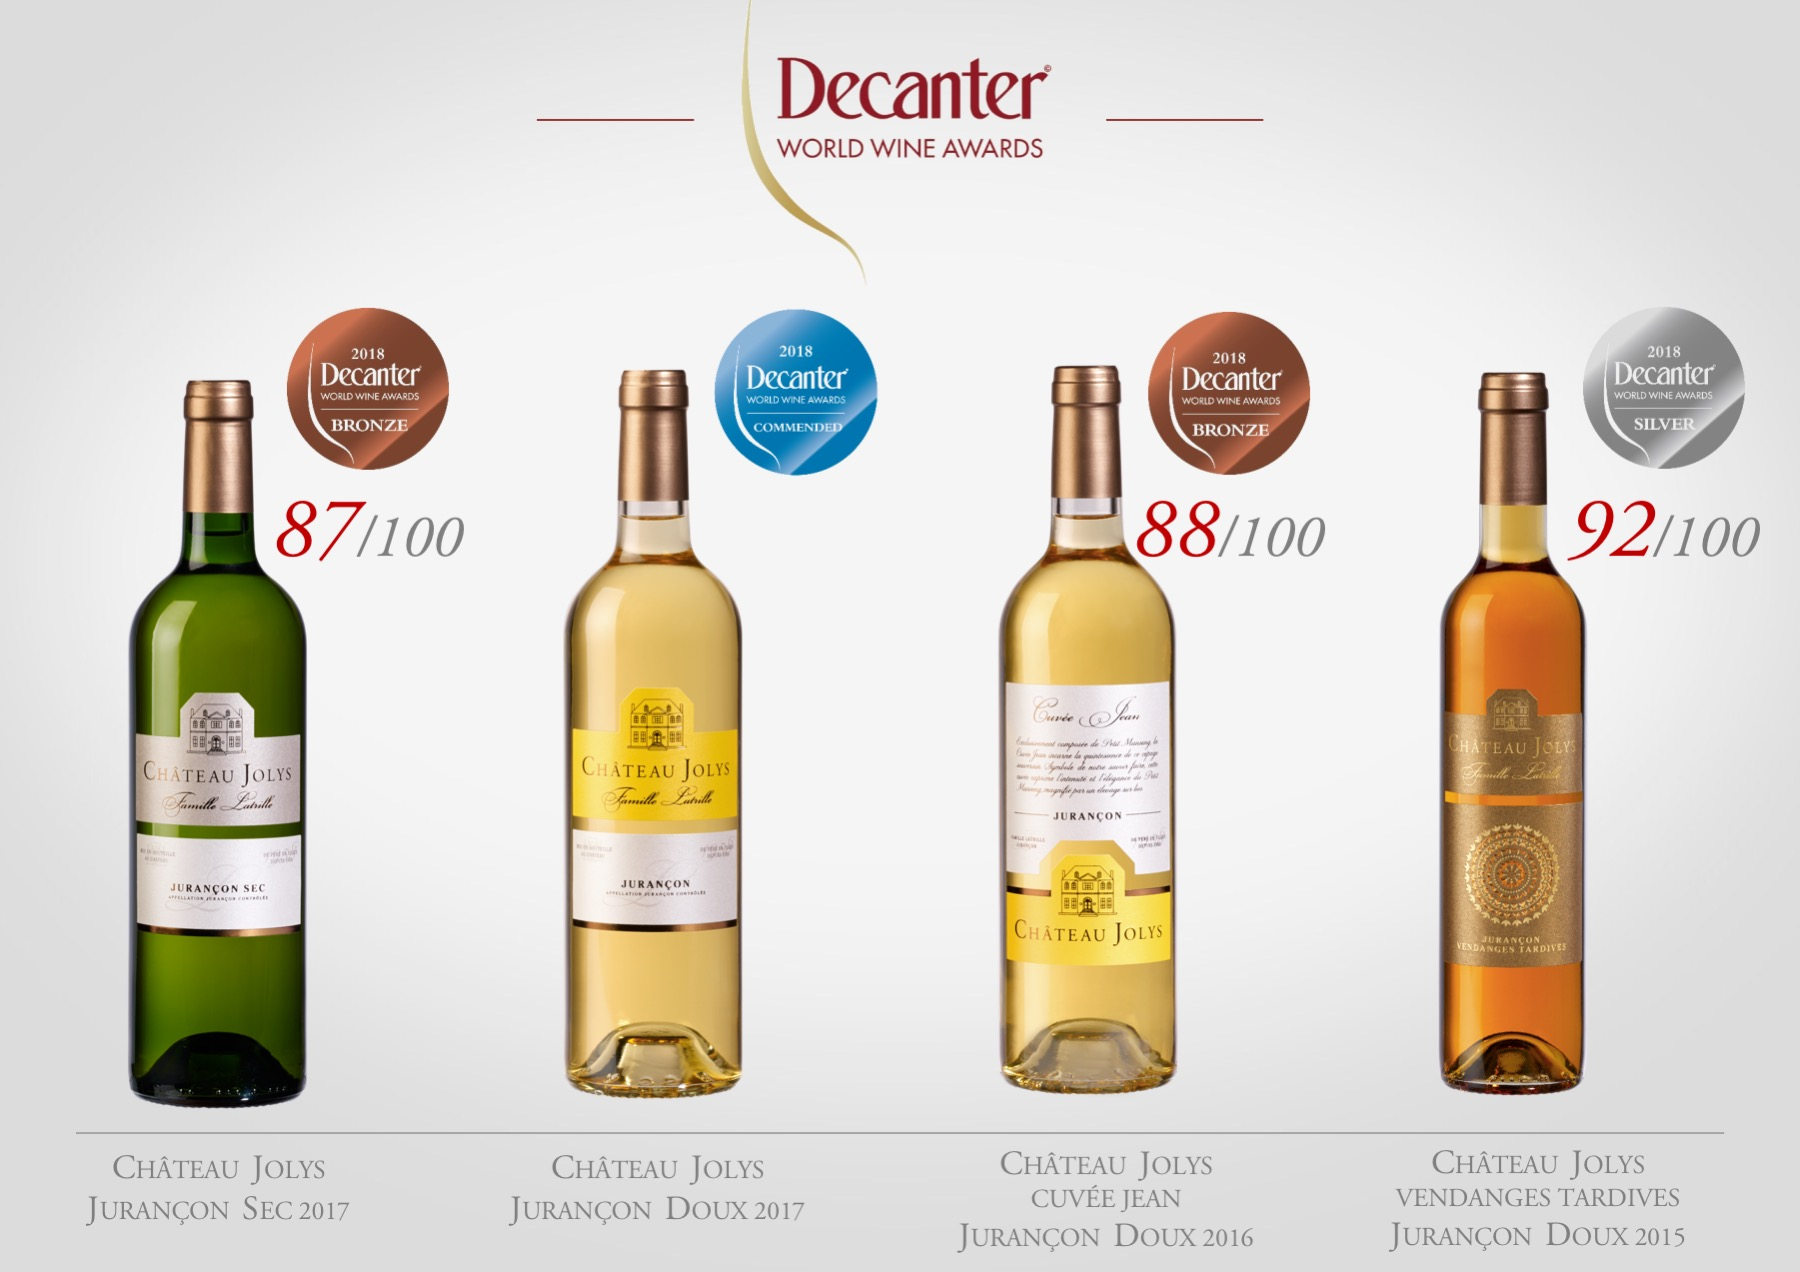 Decanter Awards 2018 - Chateau Jolys